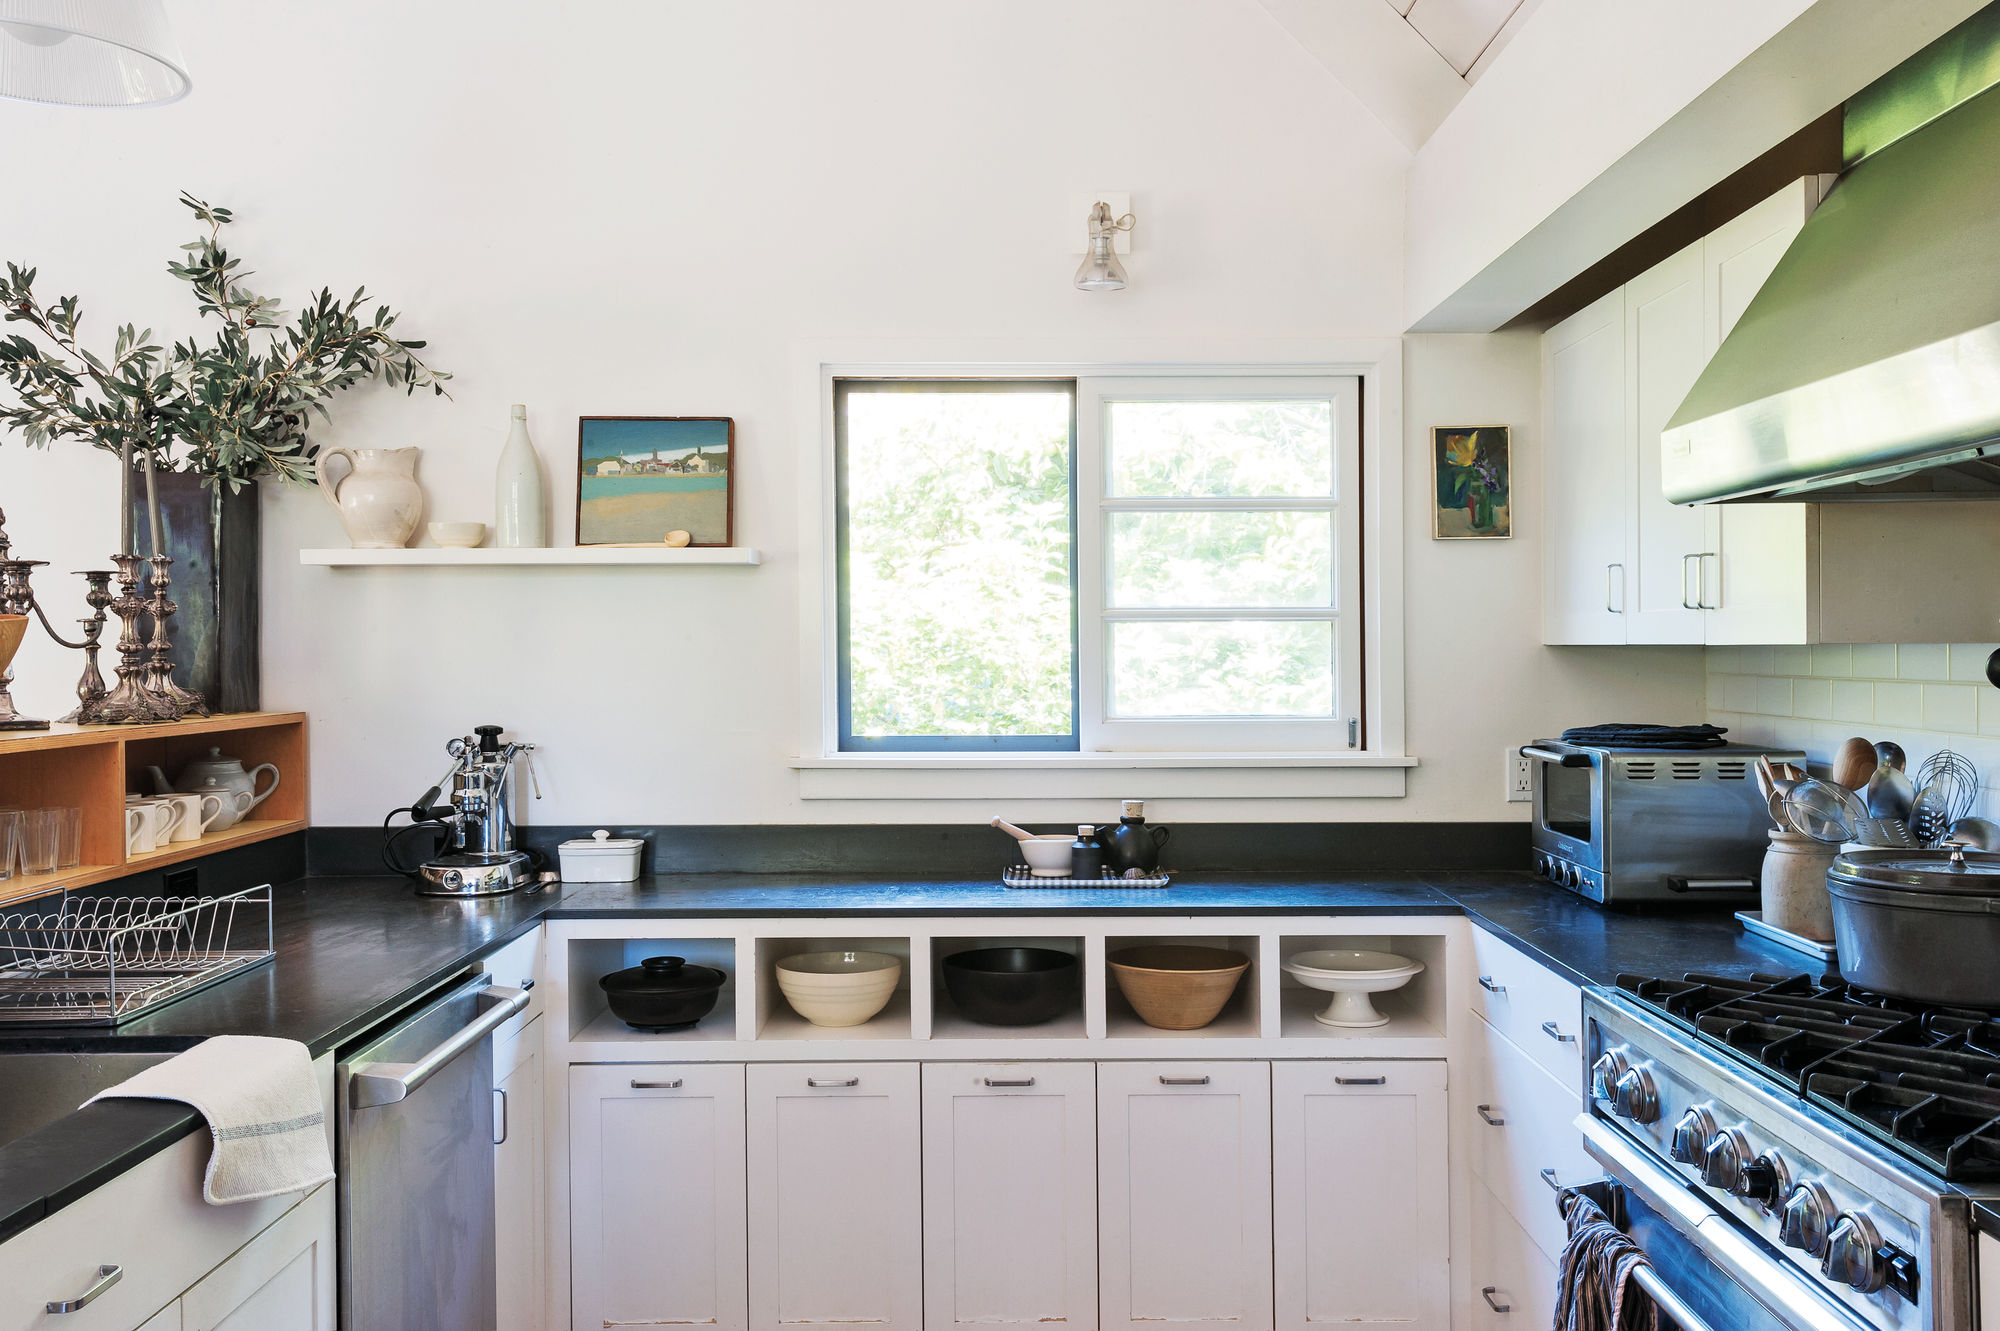 julie-carlson-mill-valley-matthew-williams-remodelista-8-1.jpg